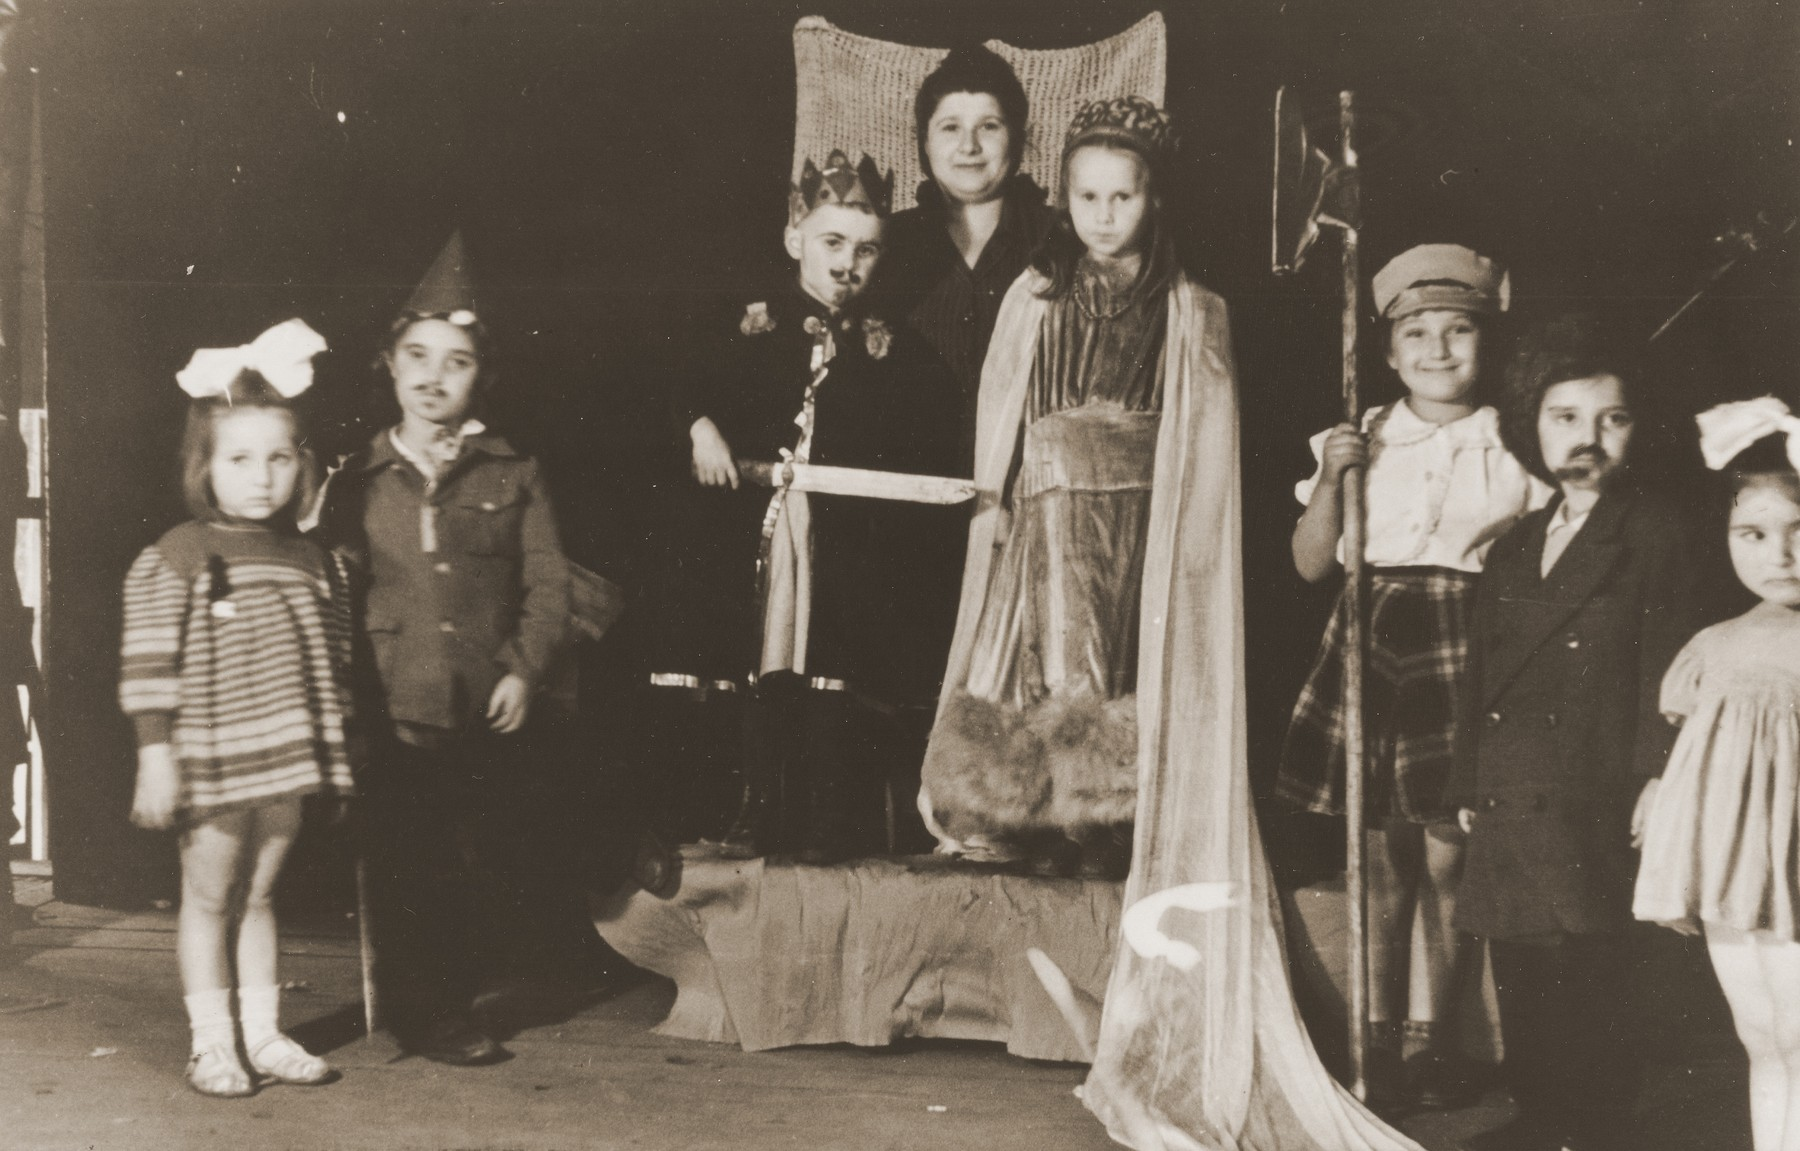 Jewish DP children perform a Purim play in the Cremona displaced persons camp.    Among those pictured is Masha  Leikach (center, dressed as Queen Esther).  Pictured on the left in the striped dress is Shulamit Gilor.